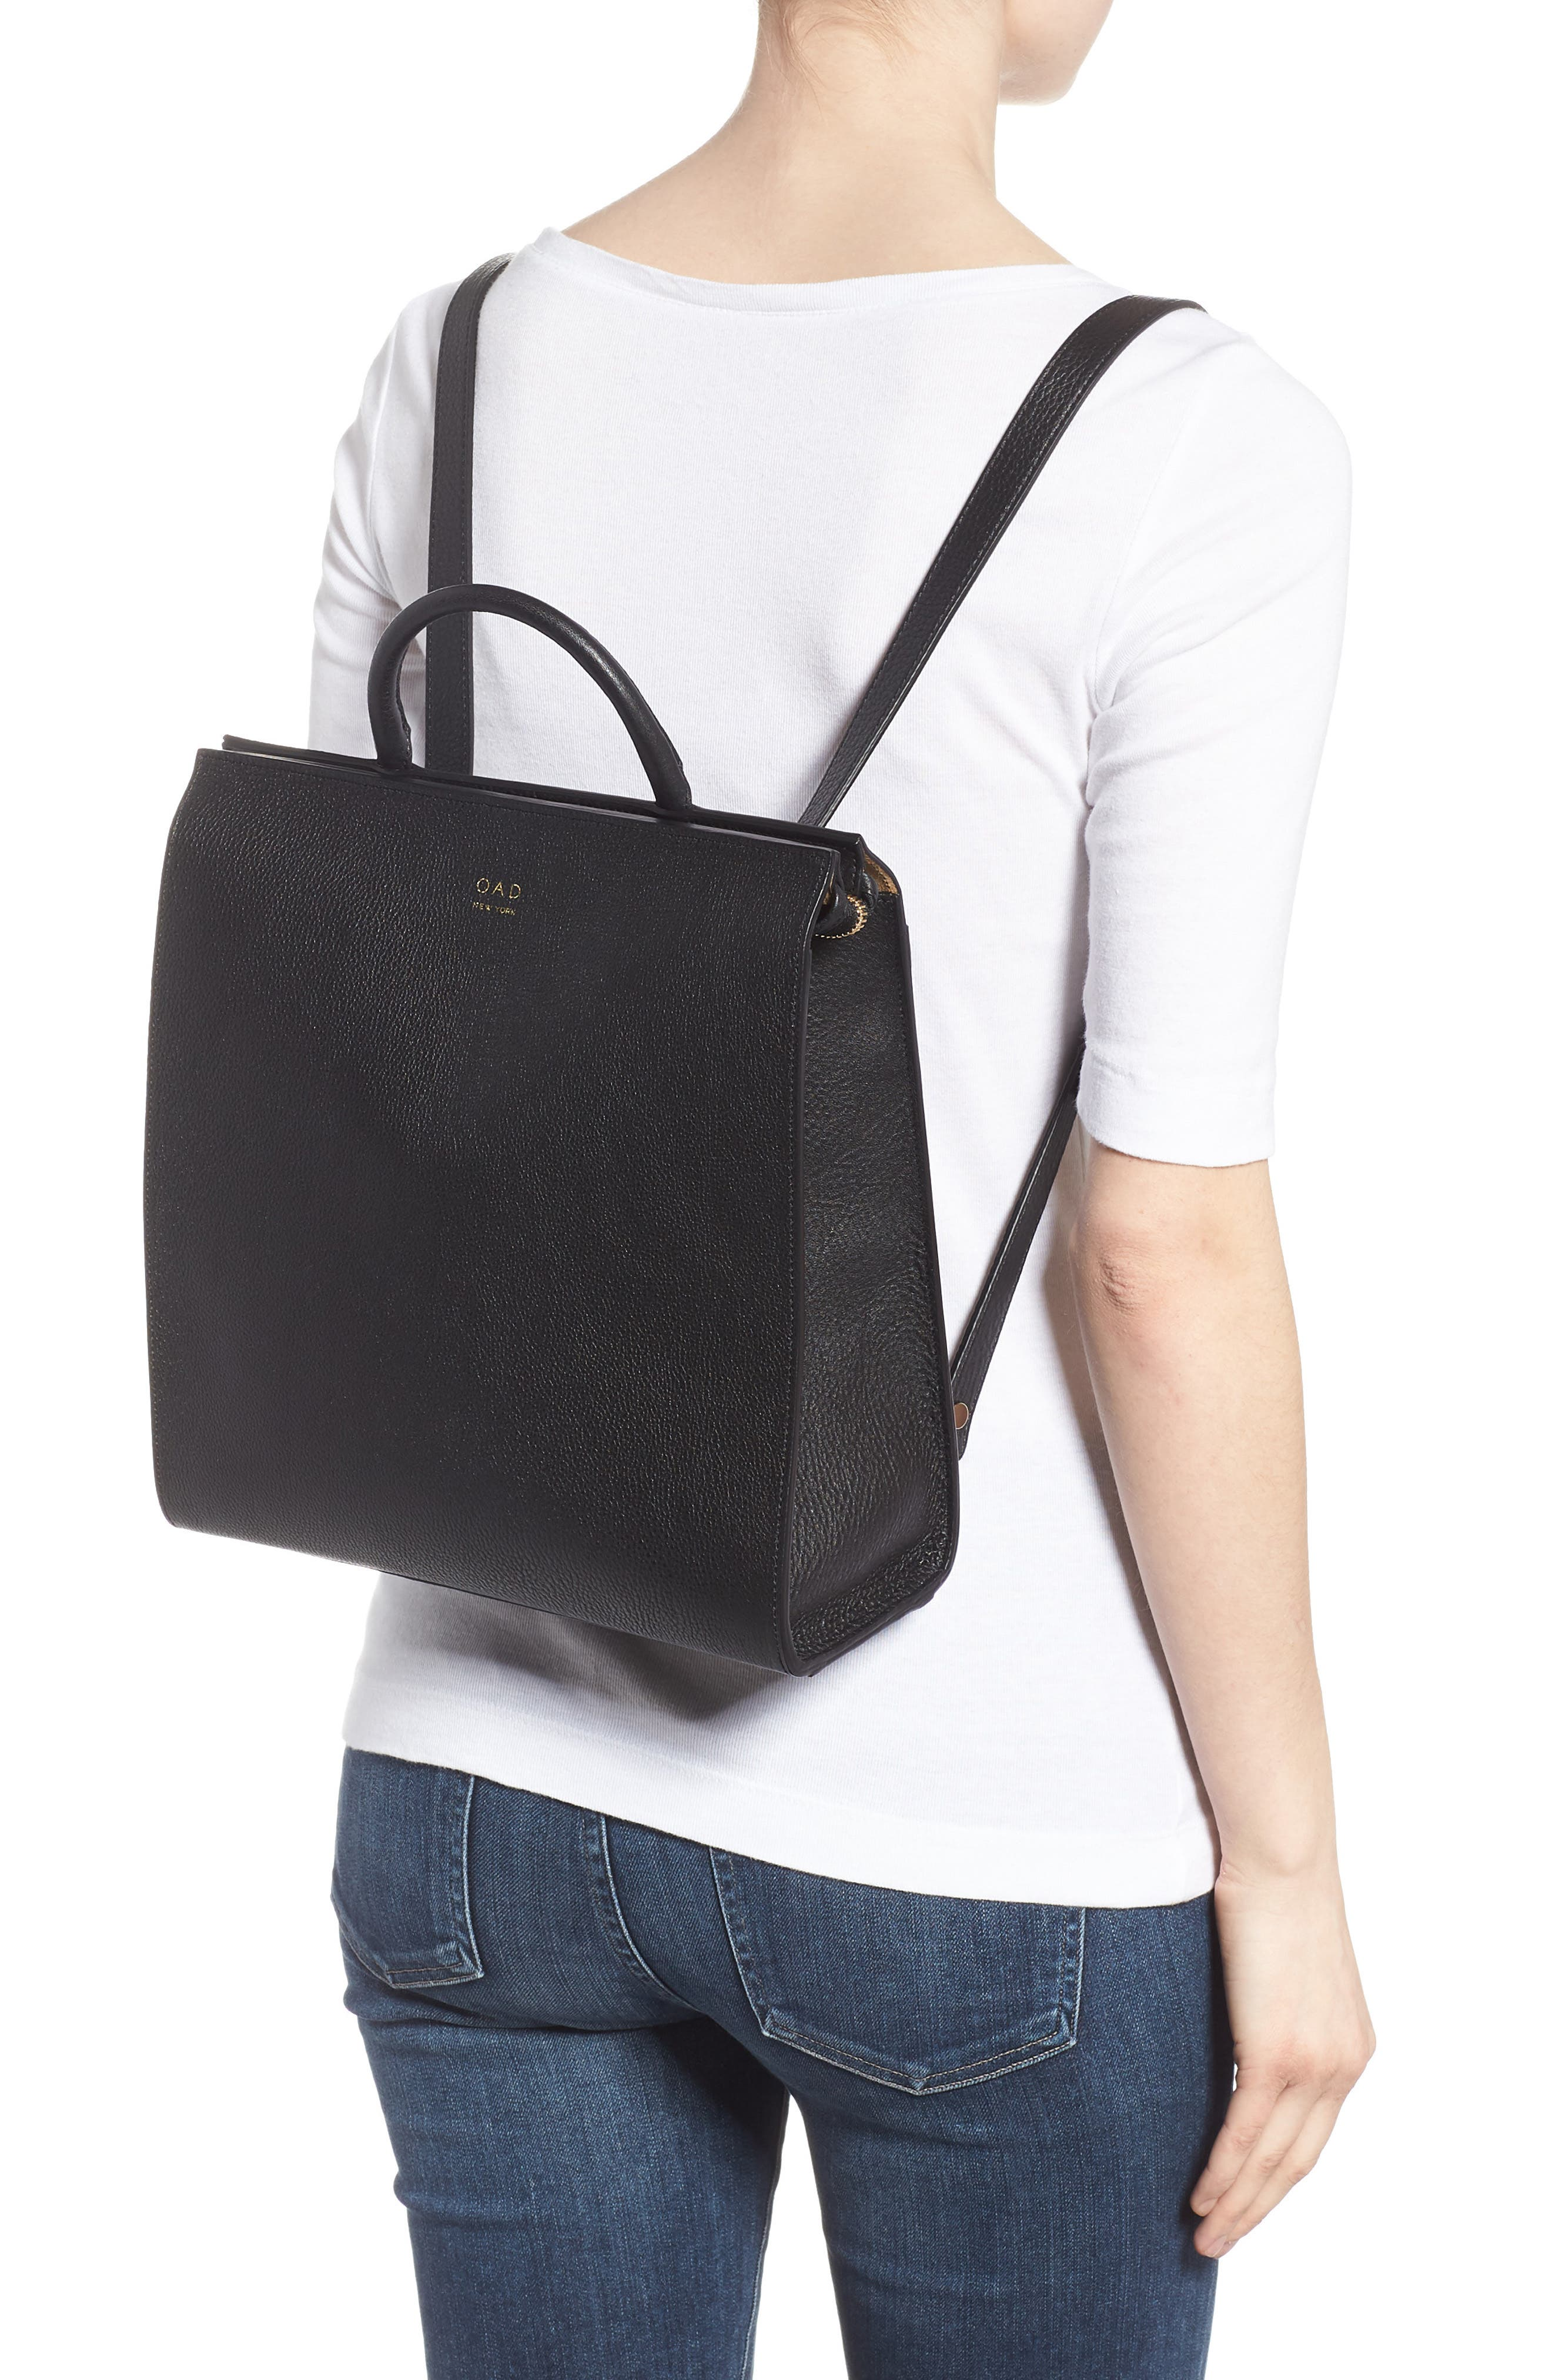 Arc Leather Backpack,                             Alternate thumbnail 2, color,                             001